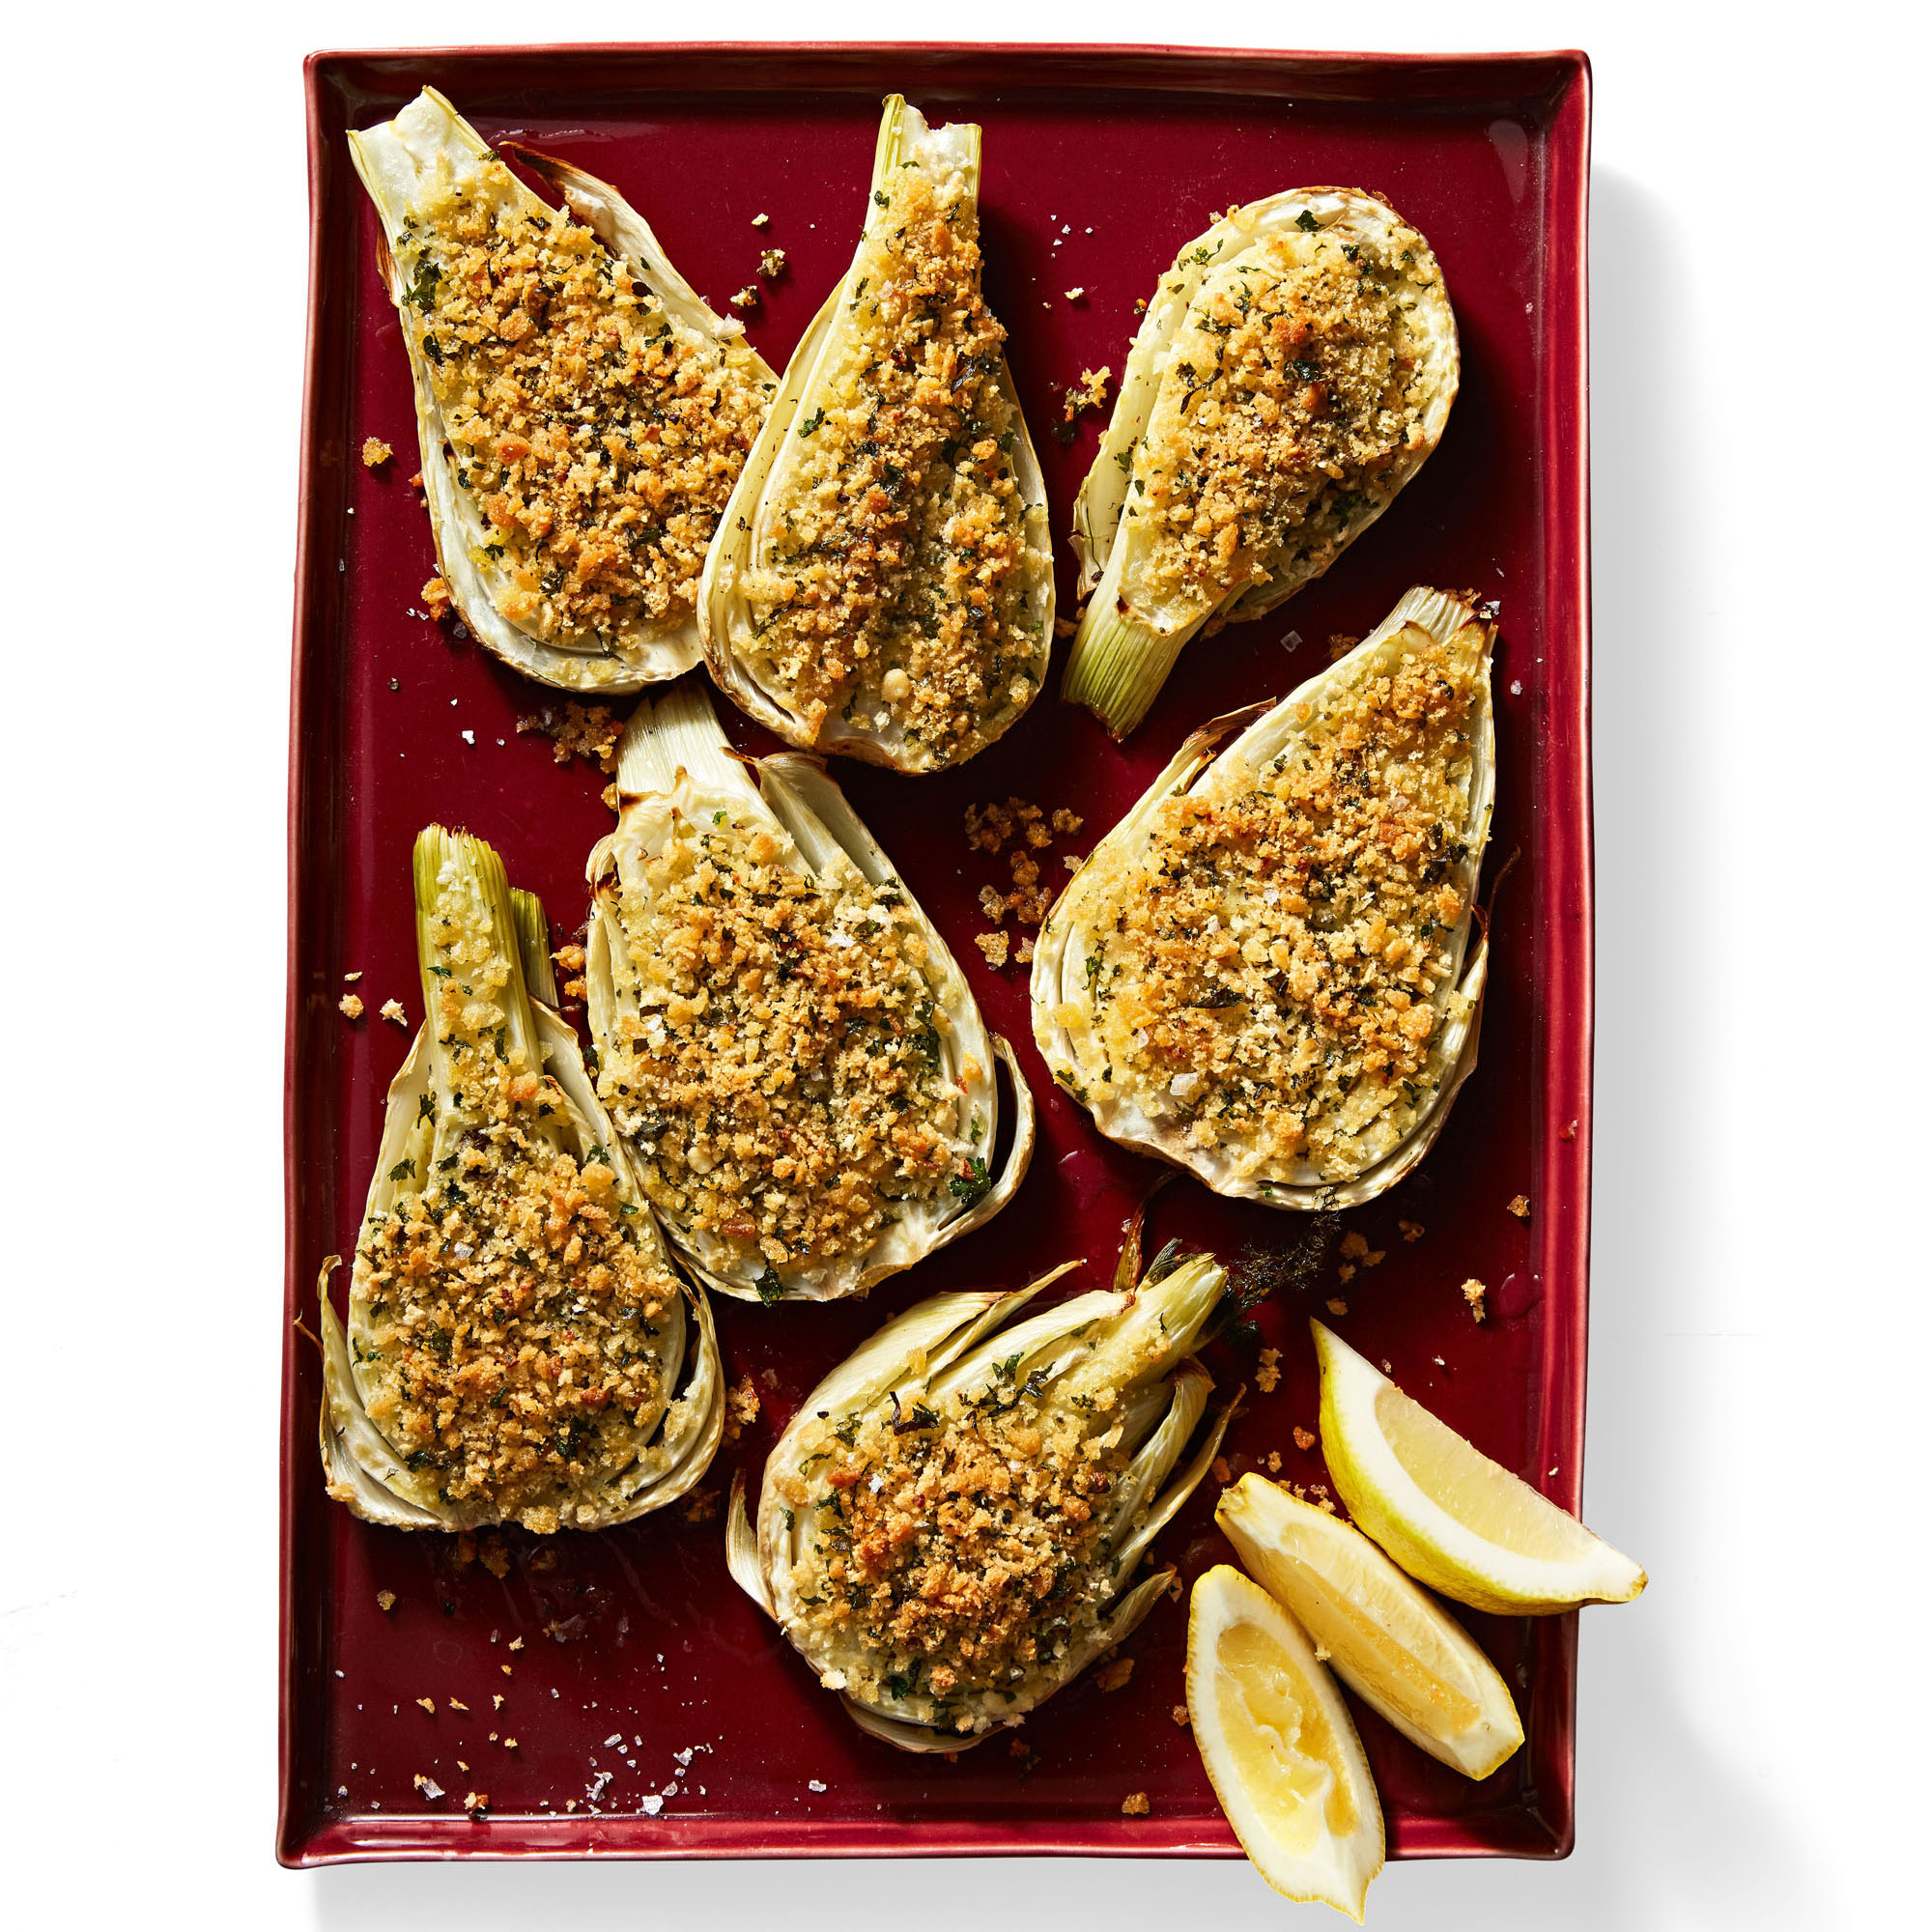 crispy roasted fennel topped with breadcrumbs and served with lemon wedges